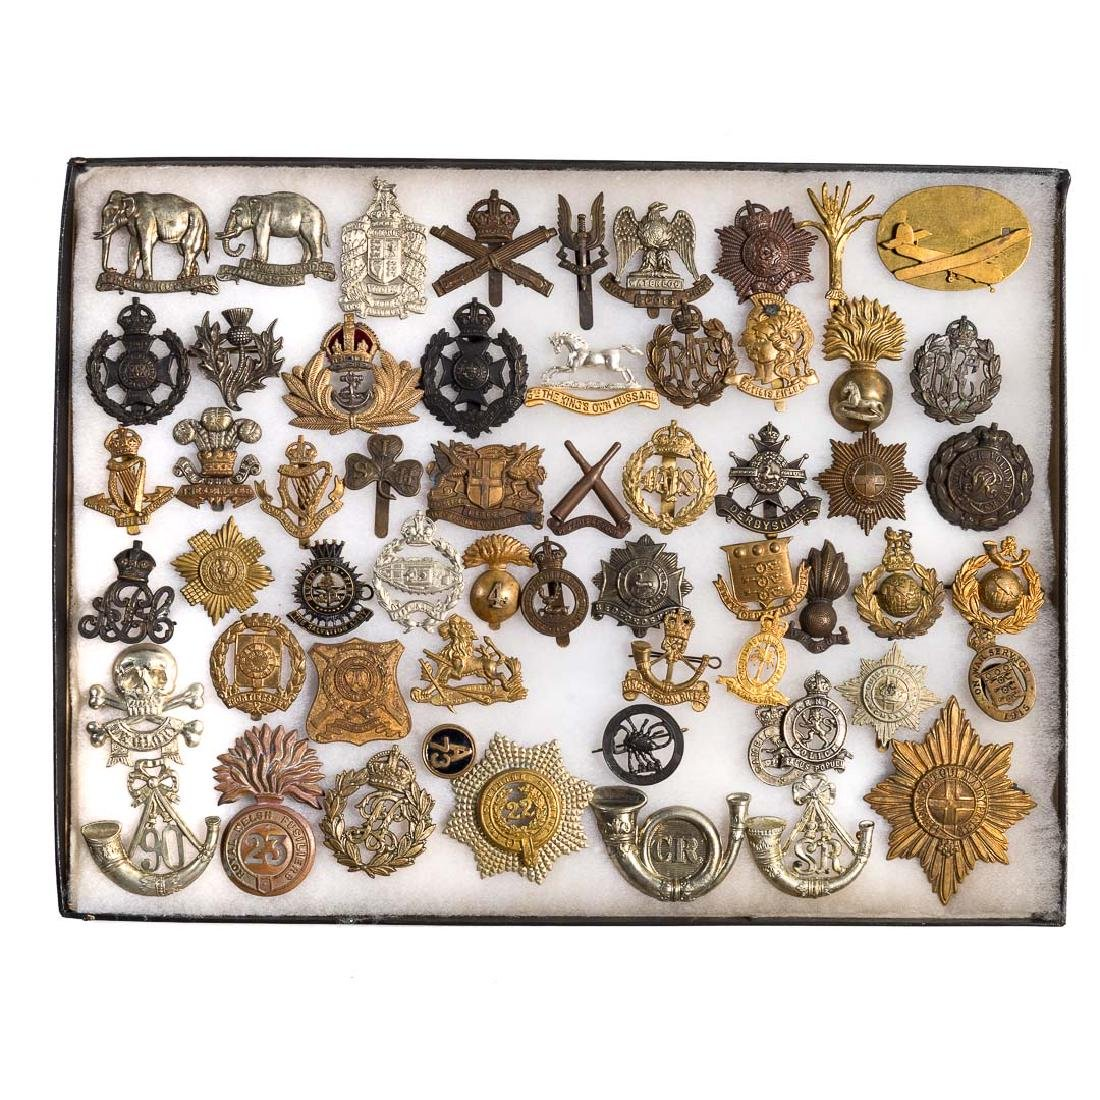 Group of British military headwear badges